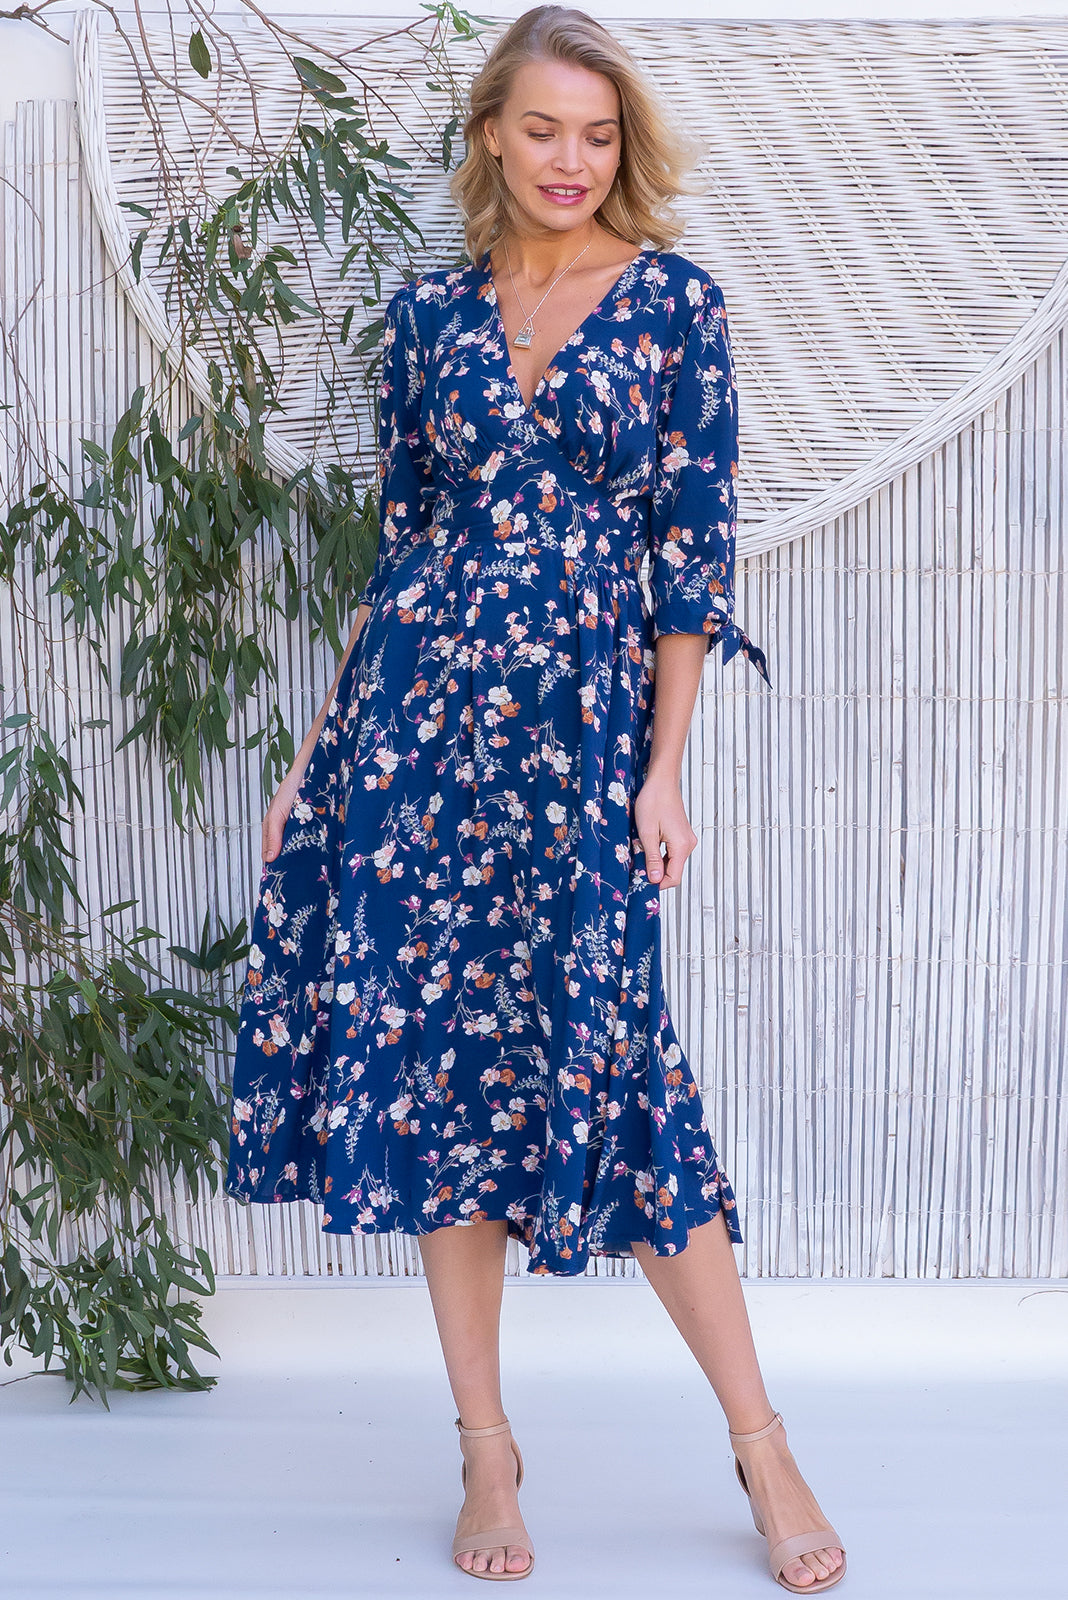 Henrietta Wildflowers Navy Dress is made of woven 100% rayon in   Navy base with a romantic pink, red and blue floral print and features 3/4 tie sleeves, fitted basque waist with gathered bust, waist back elasticated and Side pockets.